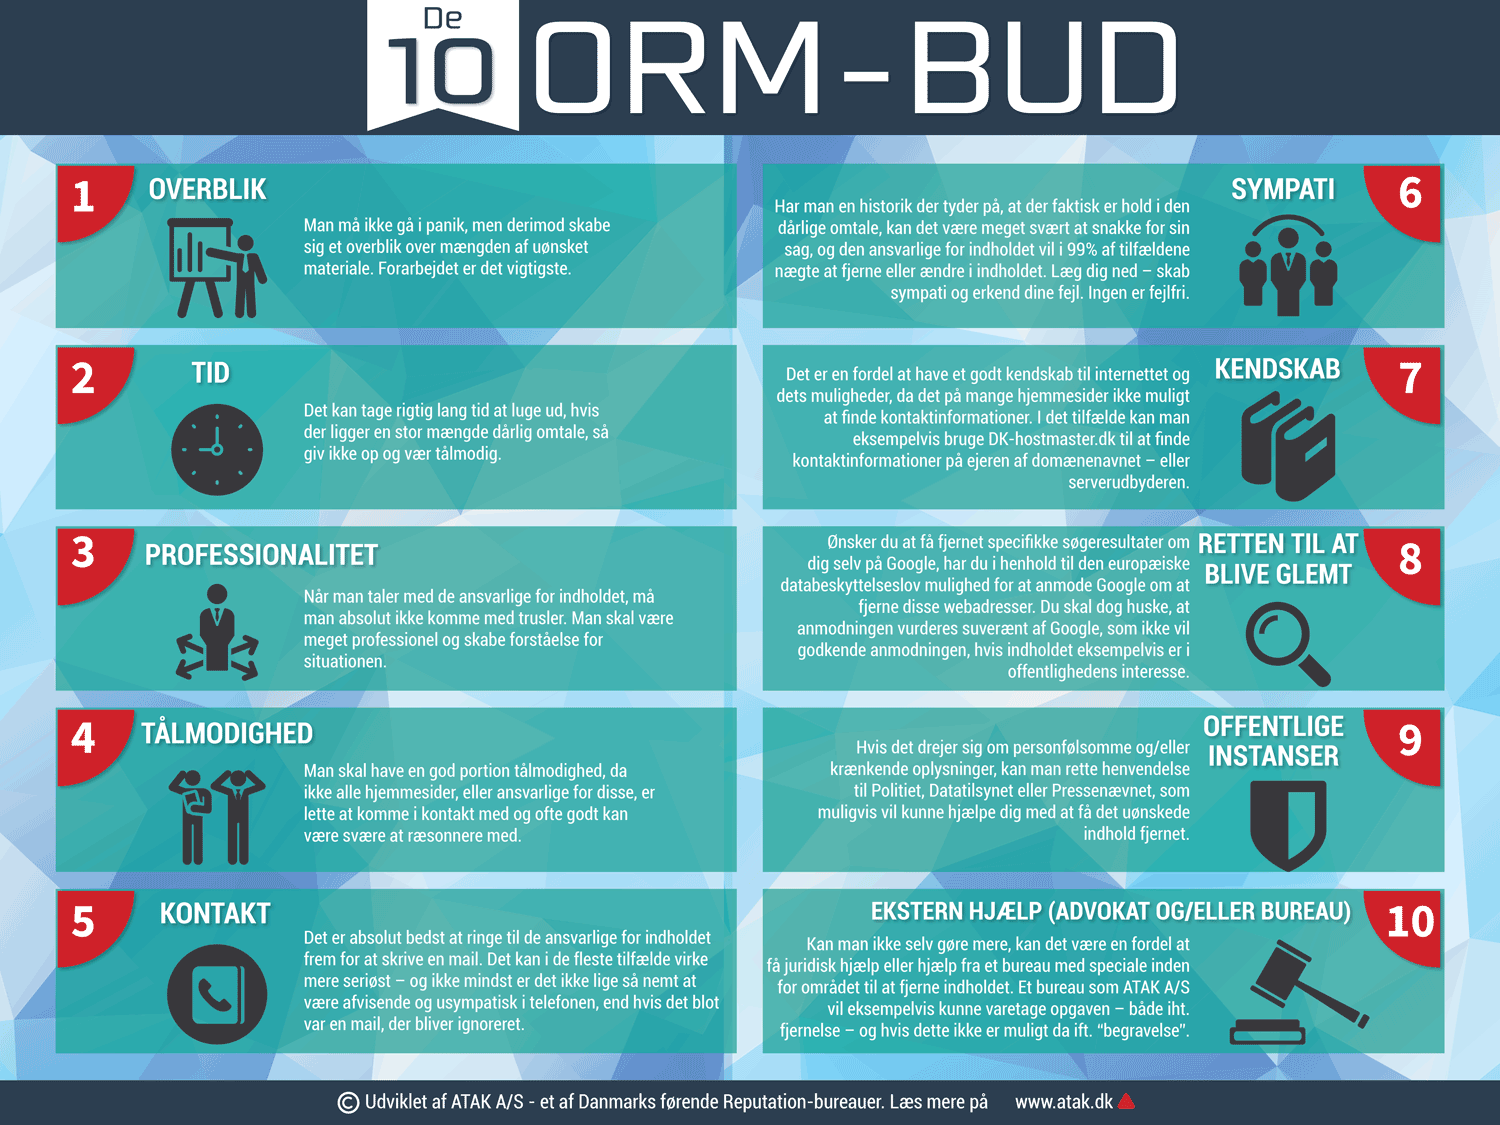 10-orm-bud-online-reputation-management